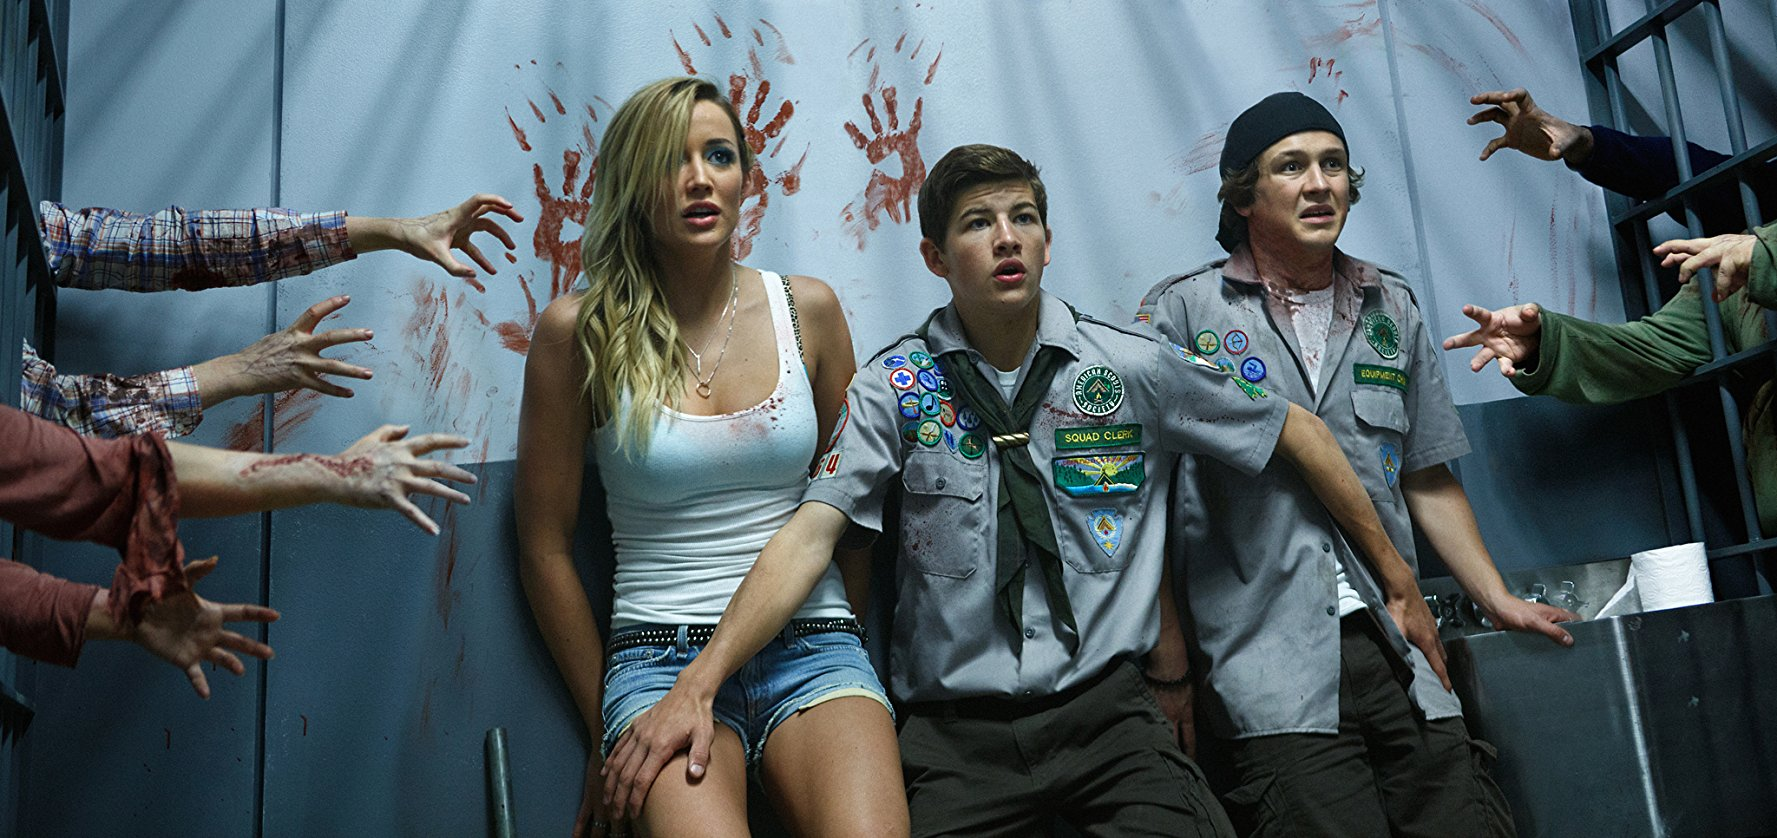 At siege from the zombies - (l to r) Sarah Dumont, Tye Sheridan, Logan Miller in Scouts Guide to the Zombie Apocalypse (2015)